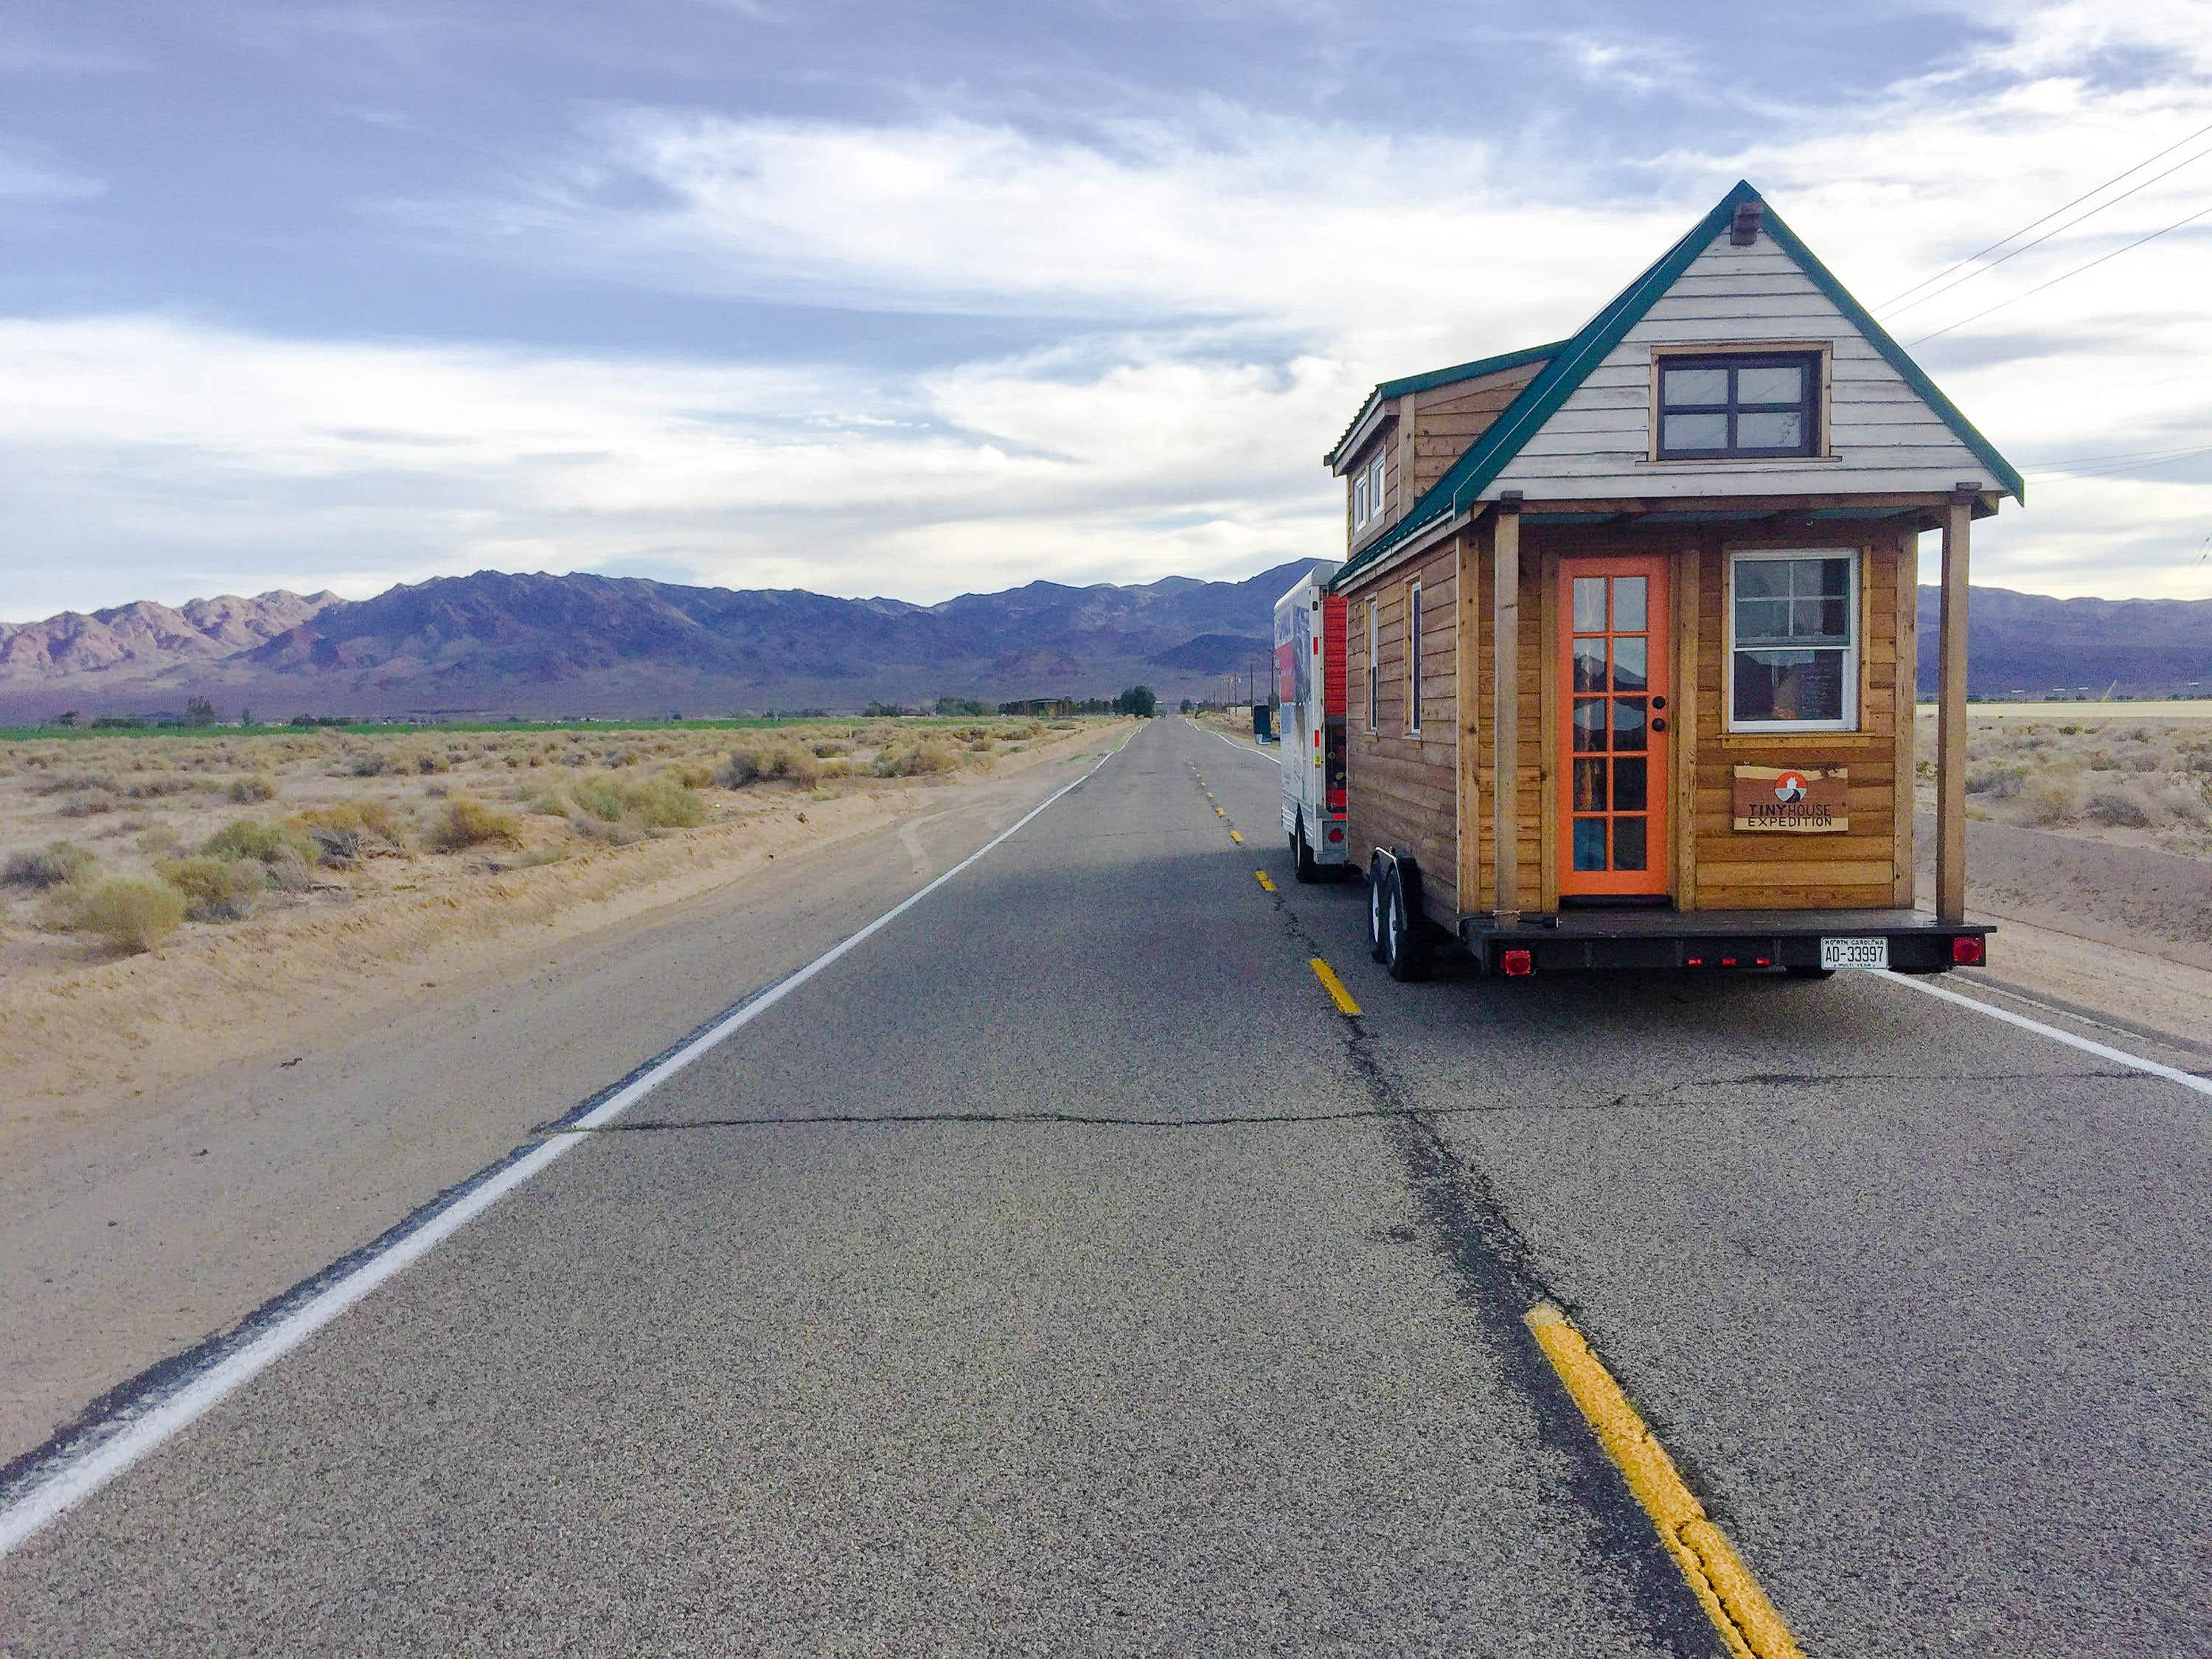 'We put our tiny house on wheels and travelled 45,000 miles across North America'